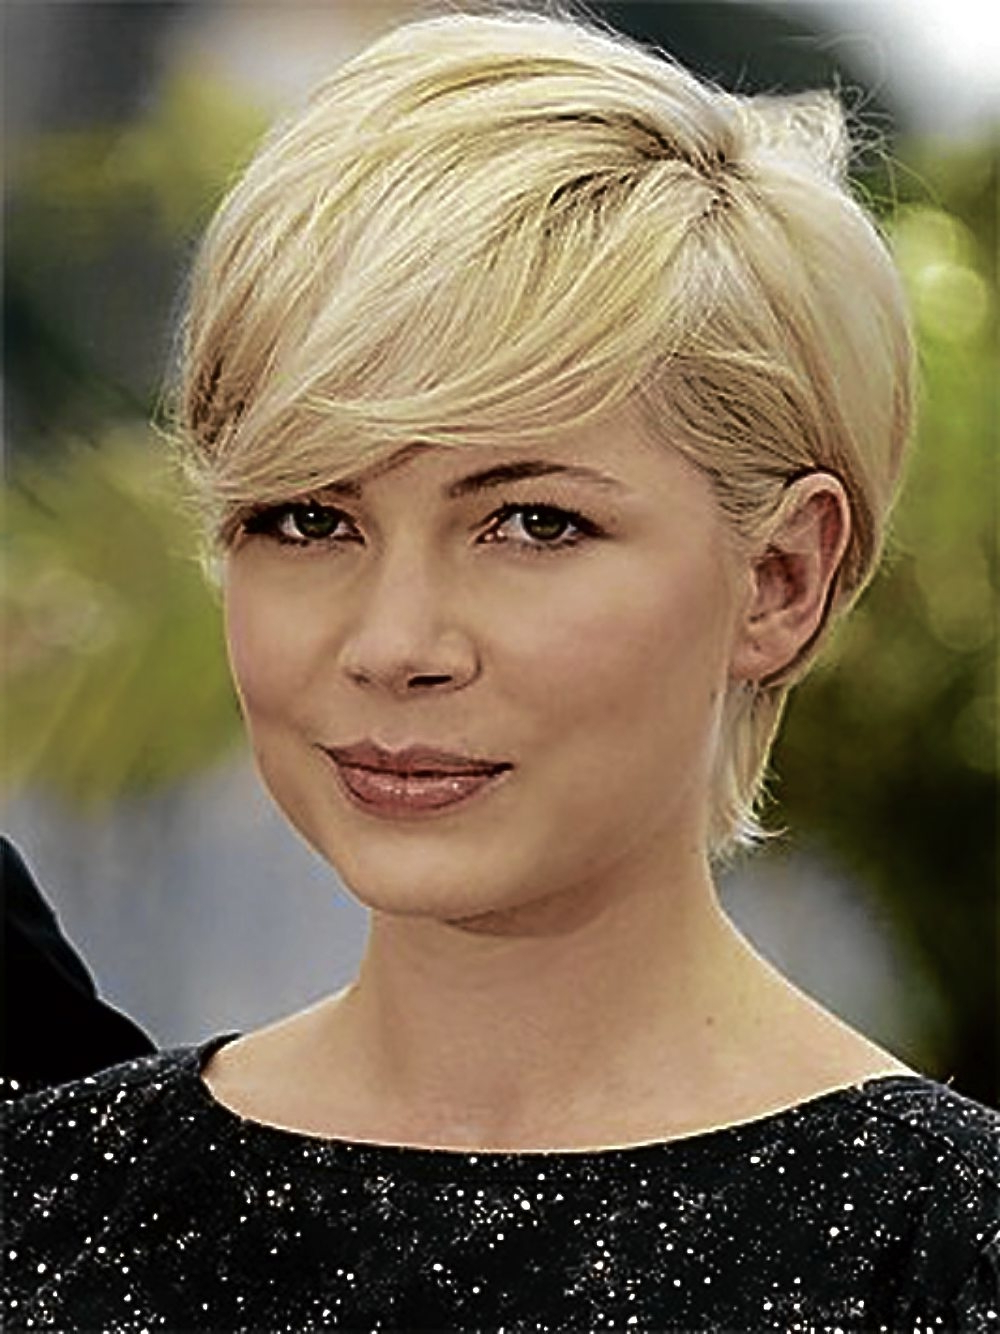 Short Pixie Haircuts For Thick Hair – Short And Cuts Hairstyles In Pixie Haircuts With Short Thick Hair (View 6 of 20)